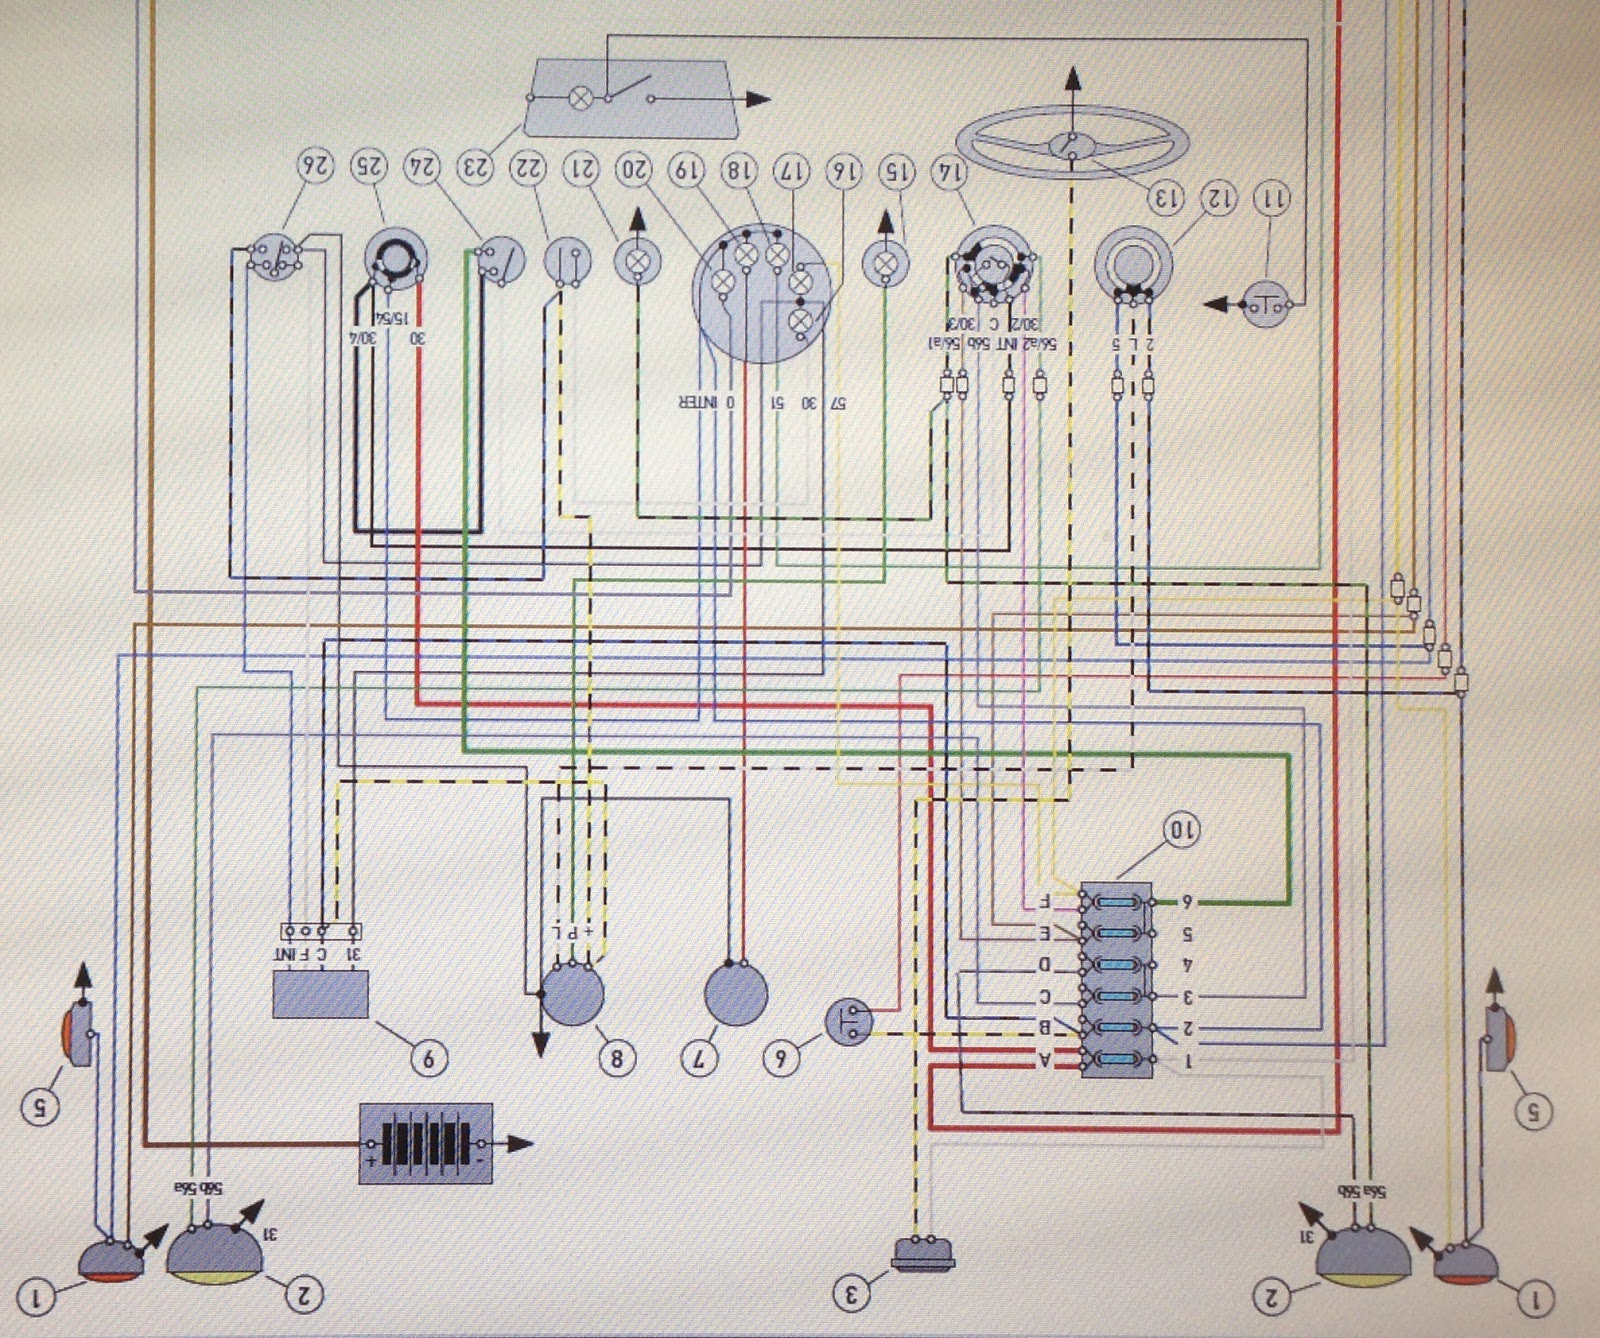 IMG_1824 fiat stereo wiring diagram wiring diagram shrutiradio fiat 500 headlight wiring diagram at bakdesigns.co